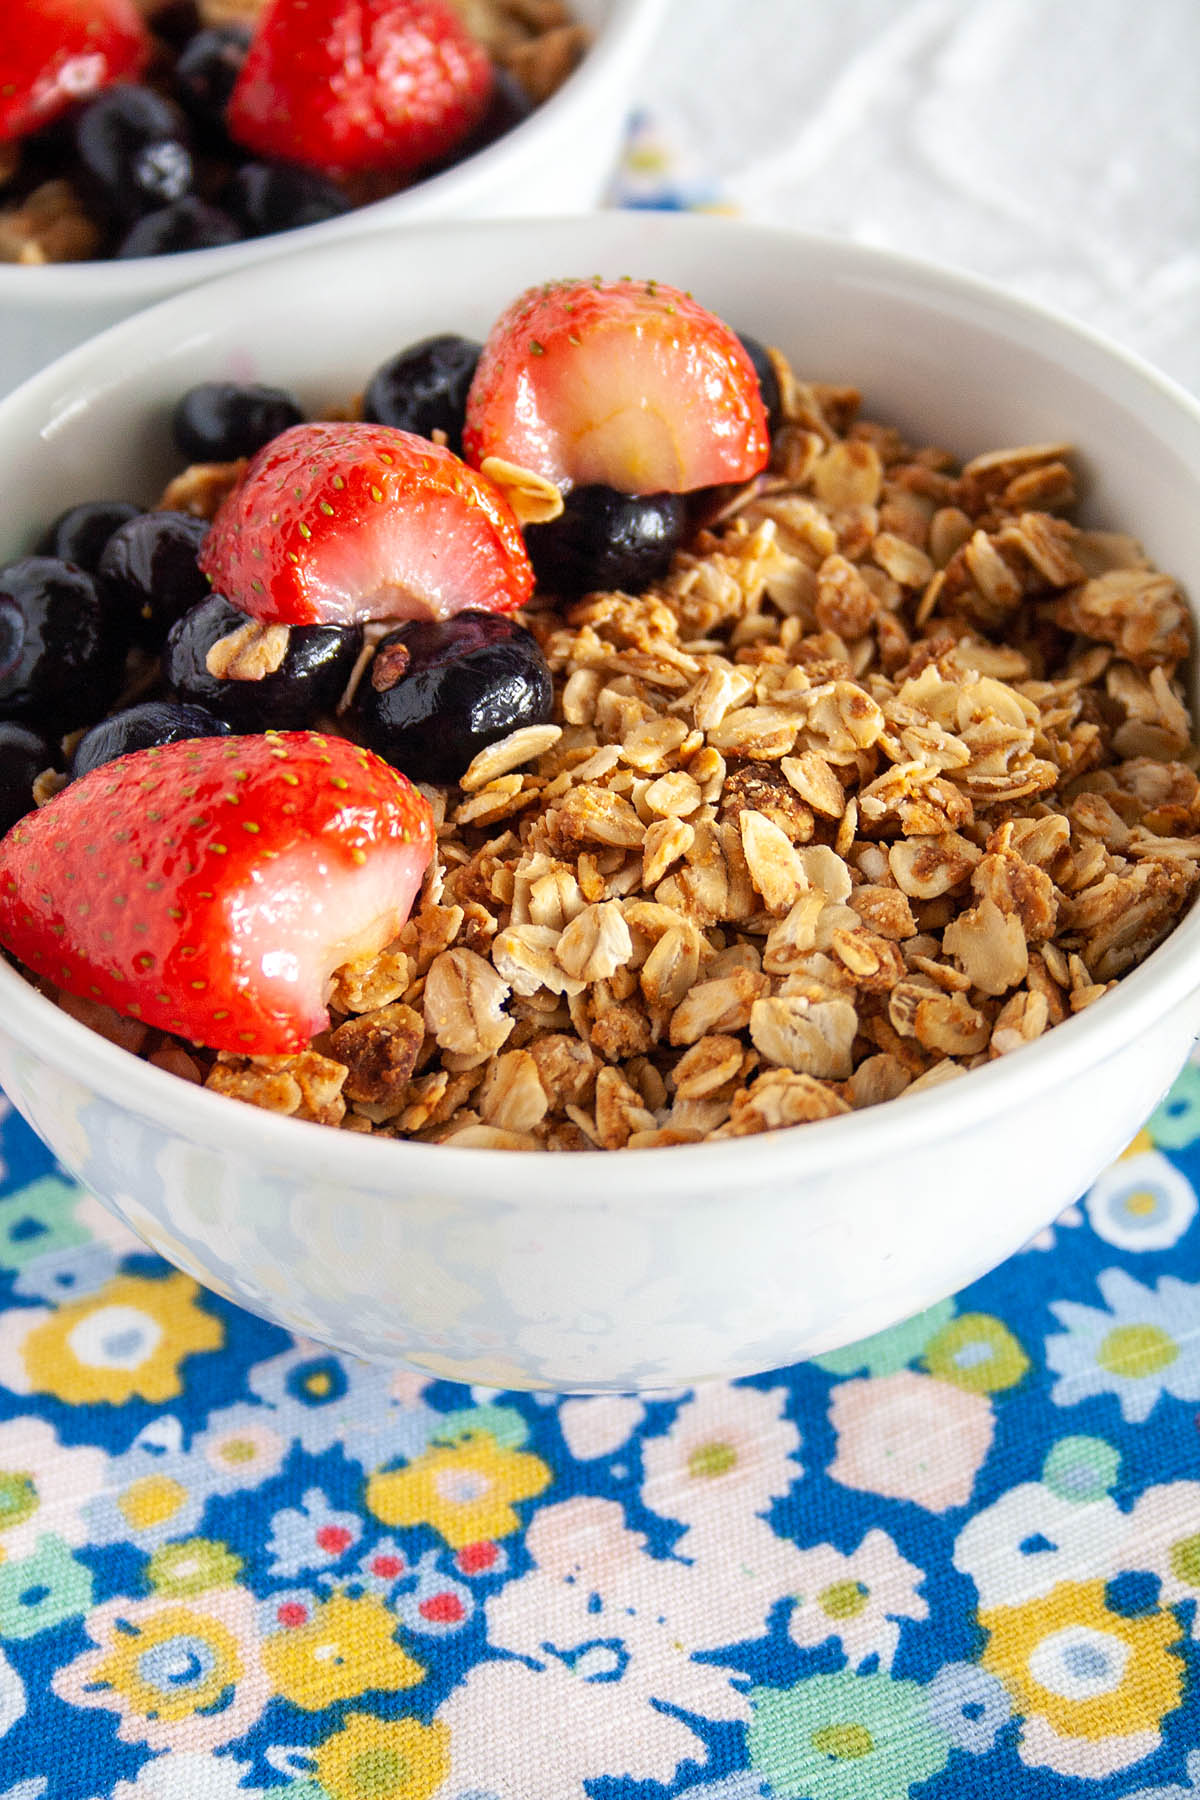 Peanut Butter Granola in a bowl with berries.